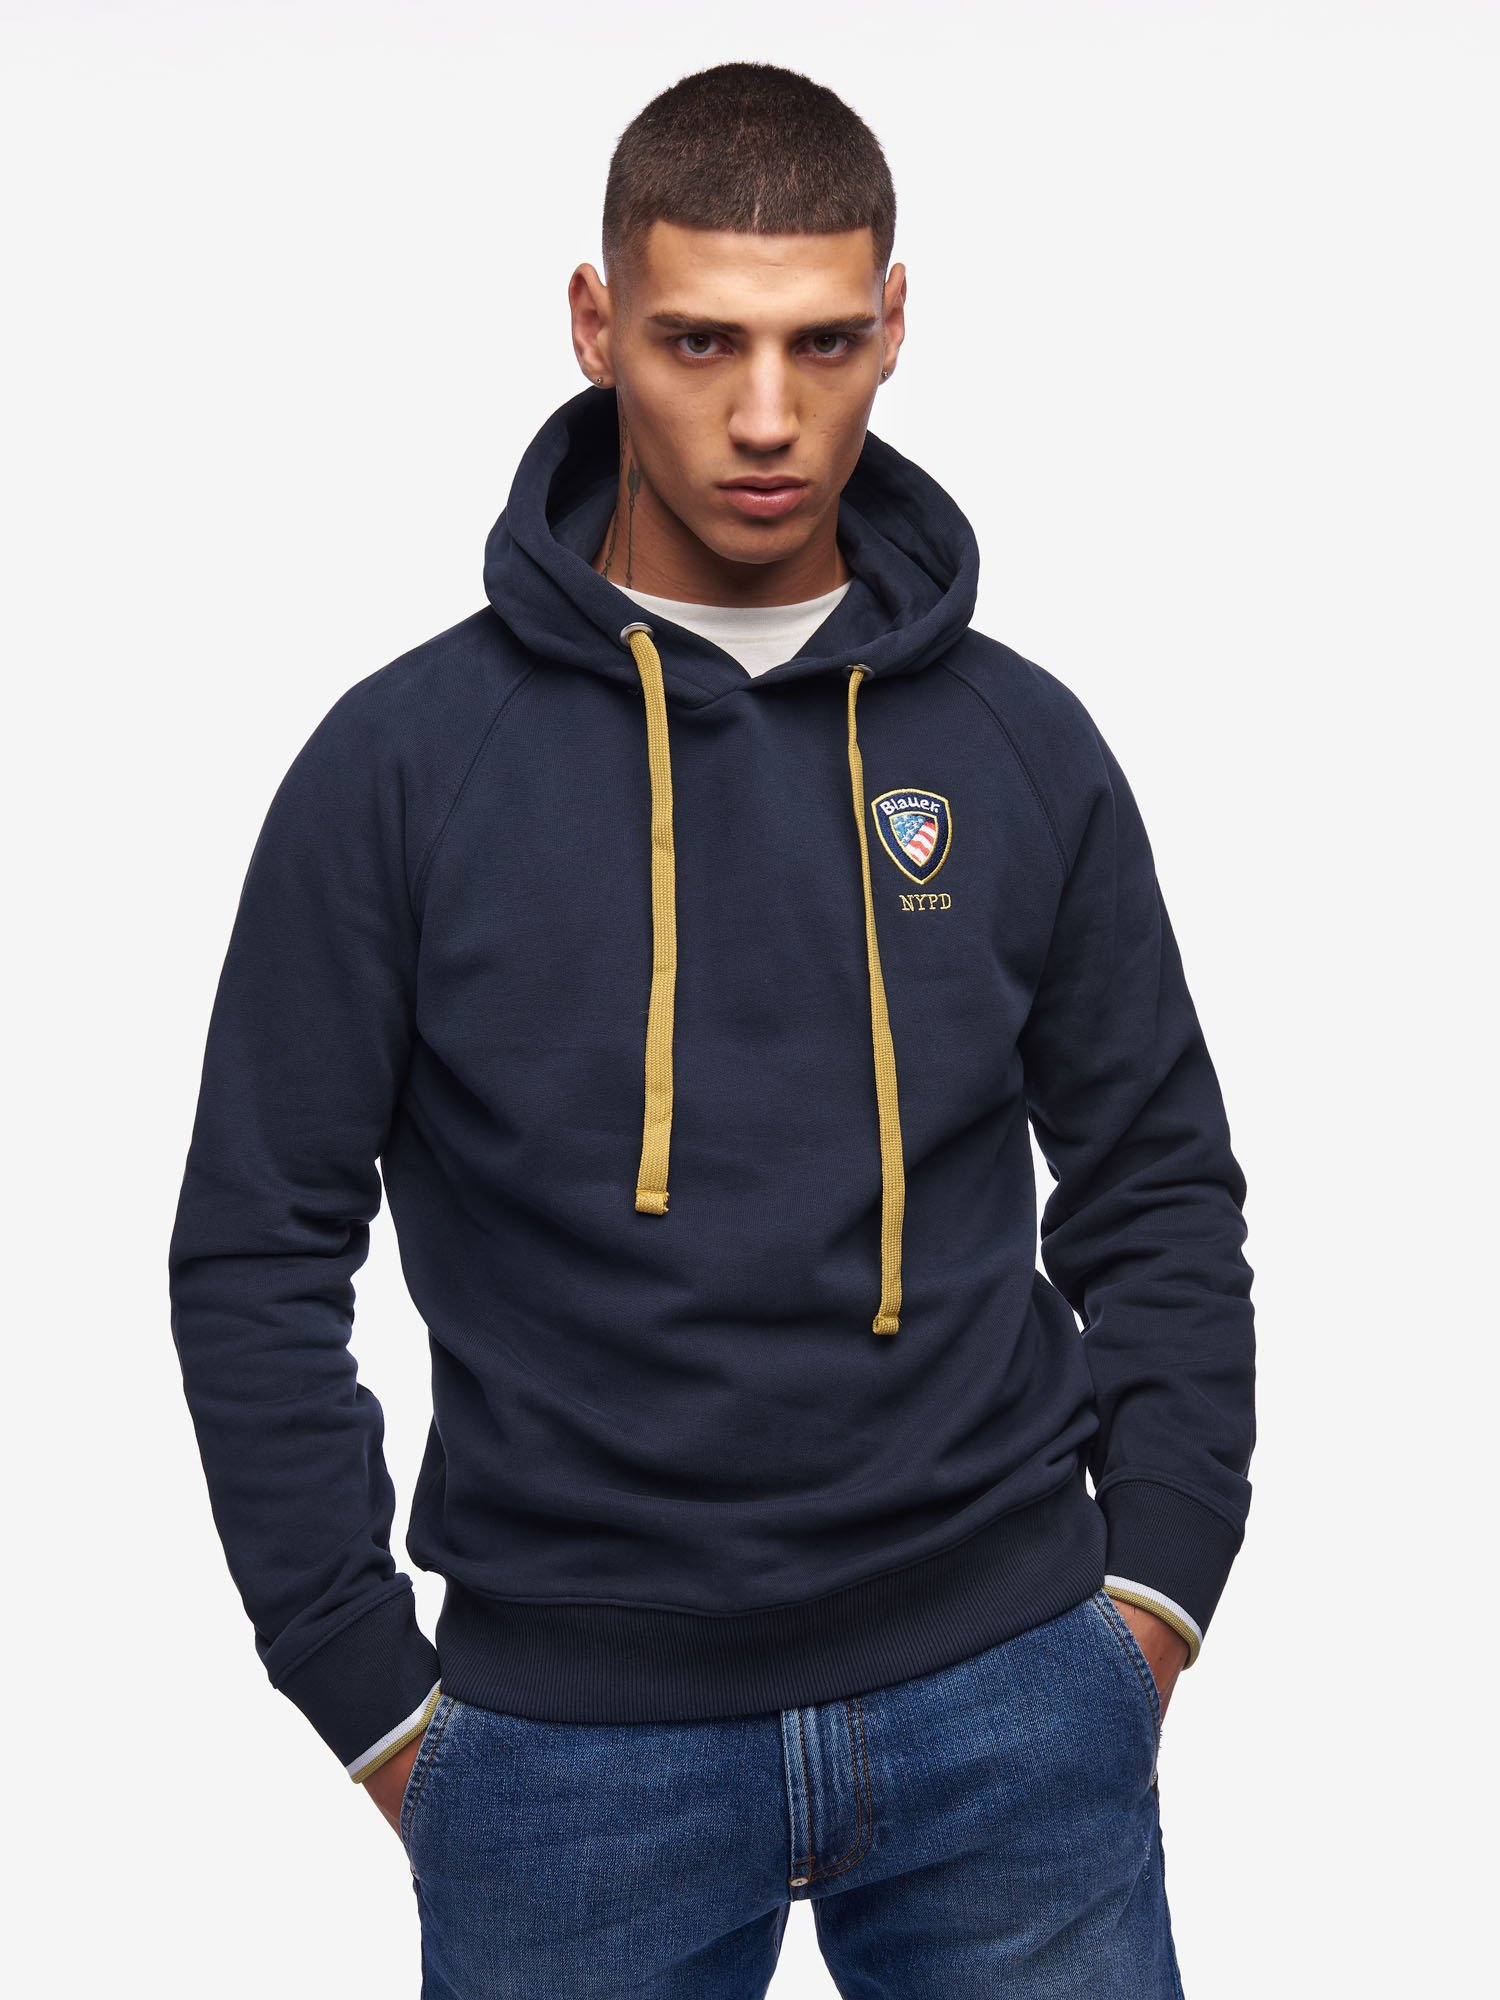 CREW NECK HOODED ACADEMY SWEATSHIRT - Blauer